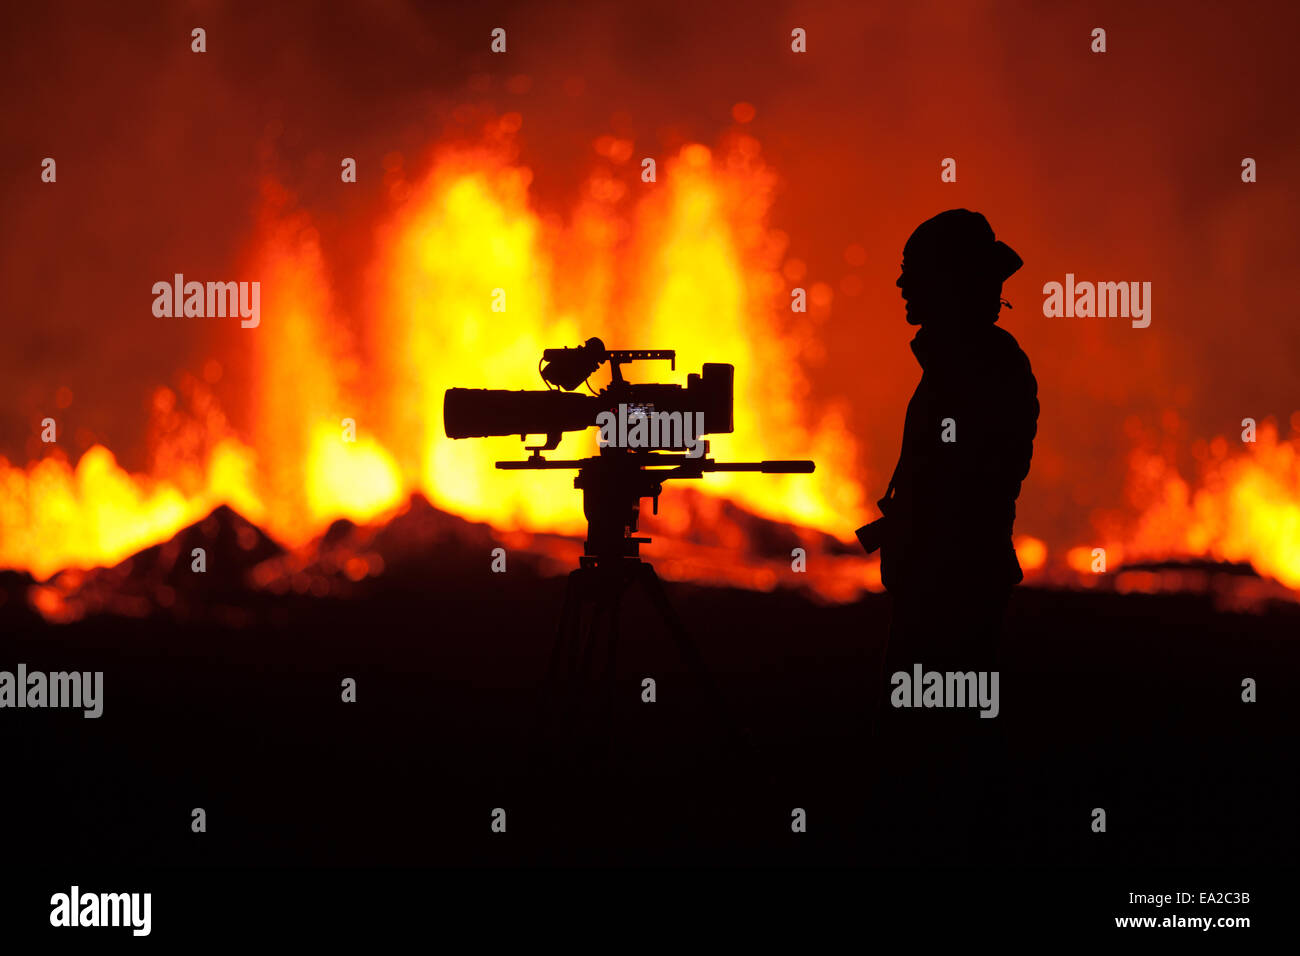 cameraman silhouetted against the iceland eruption - Stock Image